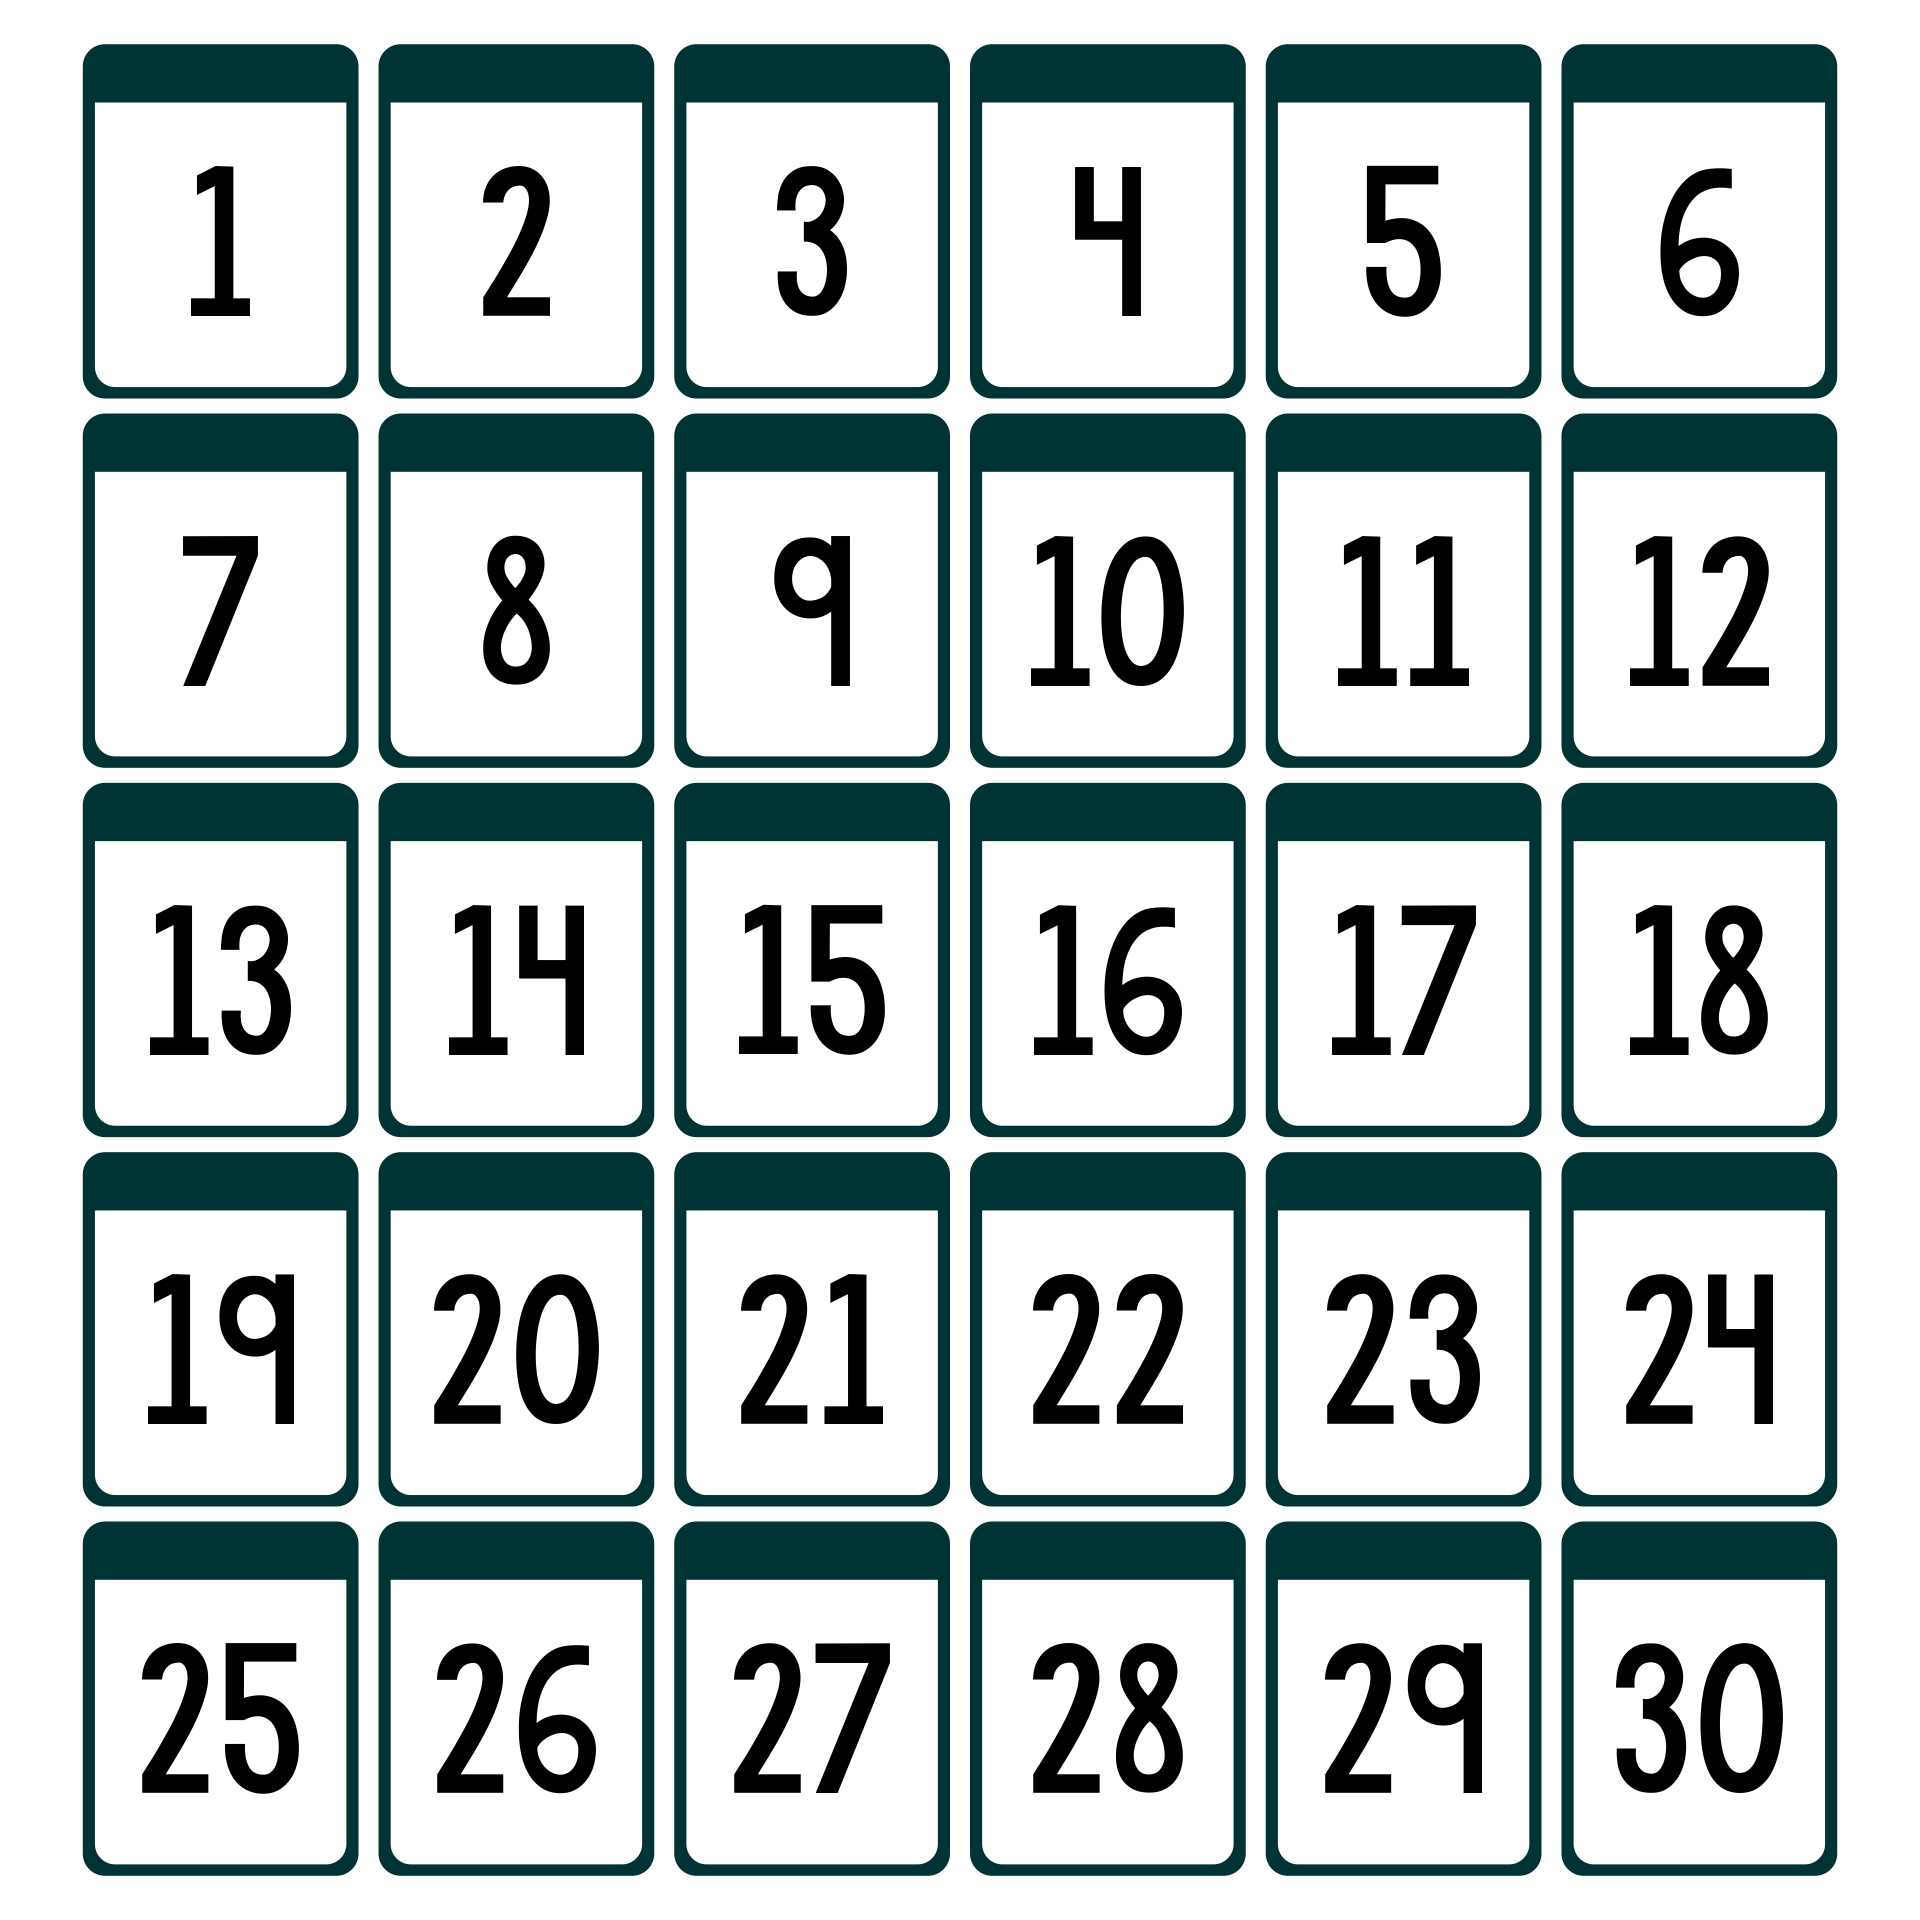 Epic image with printable numbers 1-30